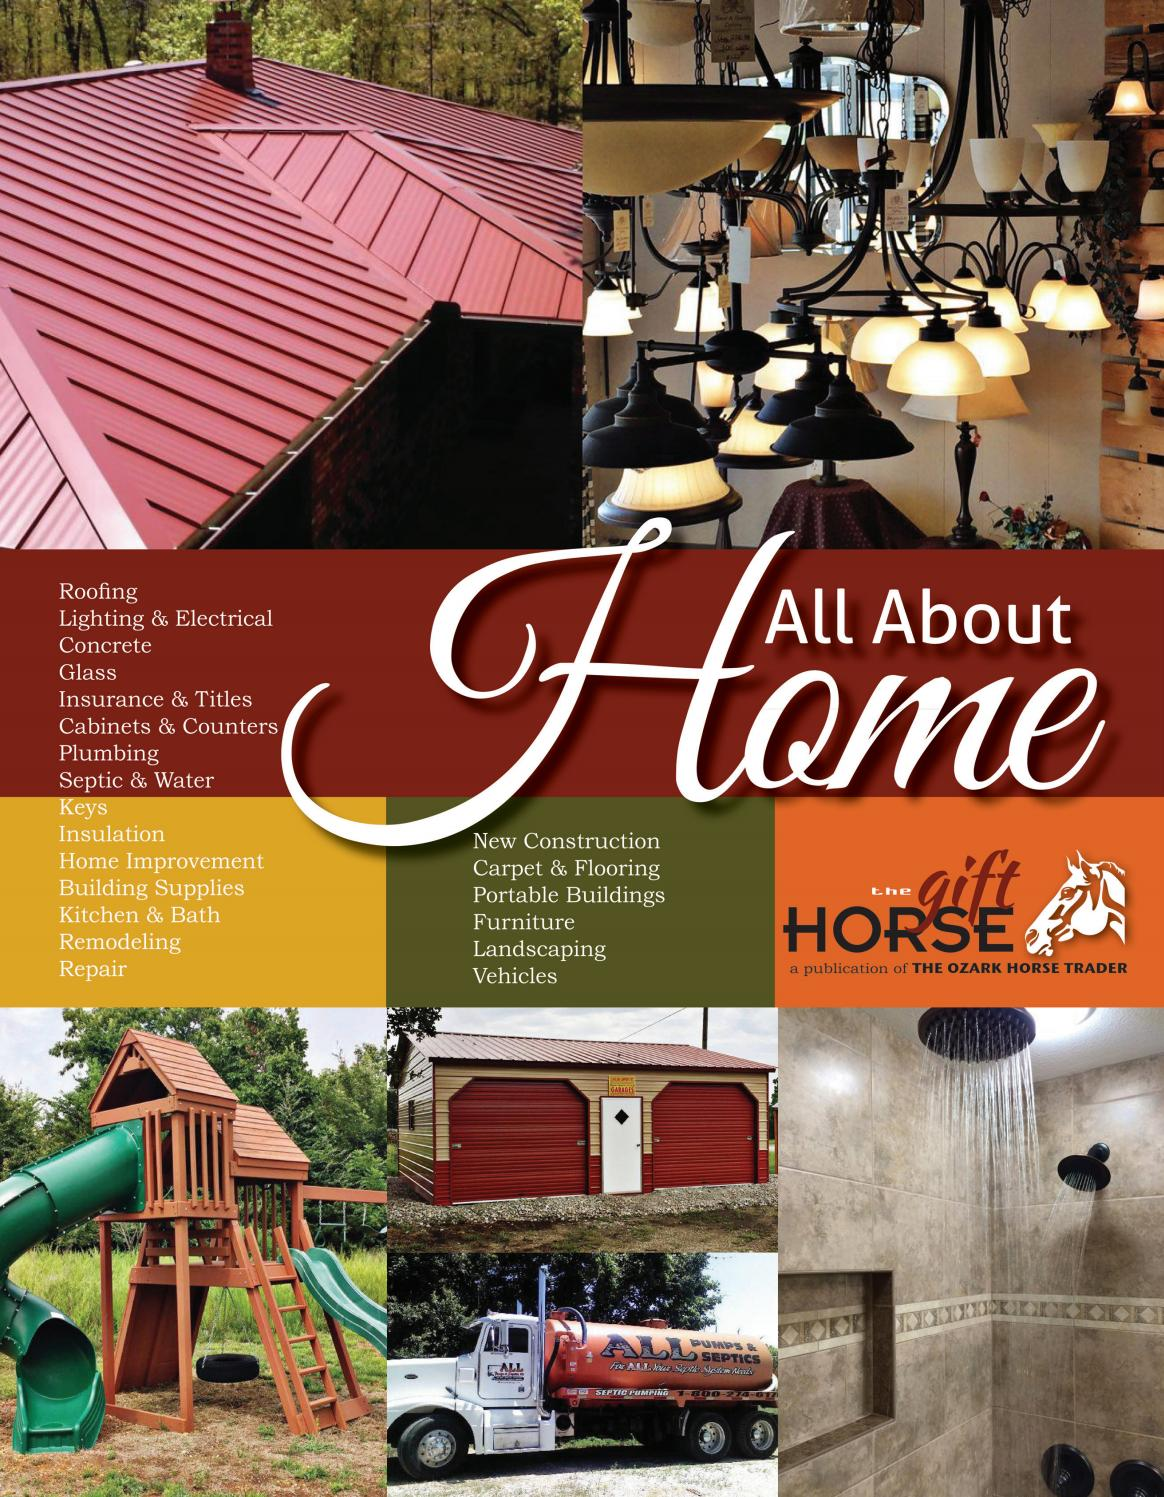 July 2016 Gift Horse By Ozark Horse Trader   Issuu